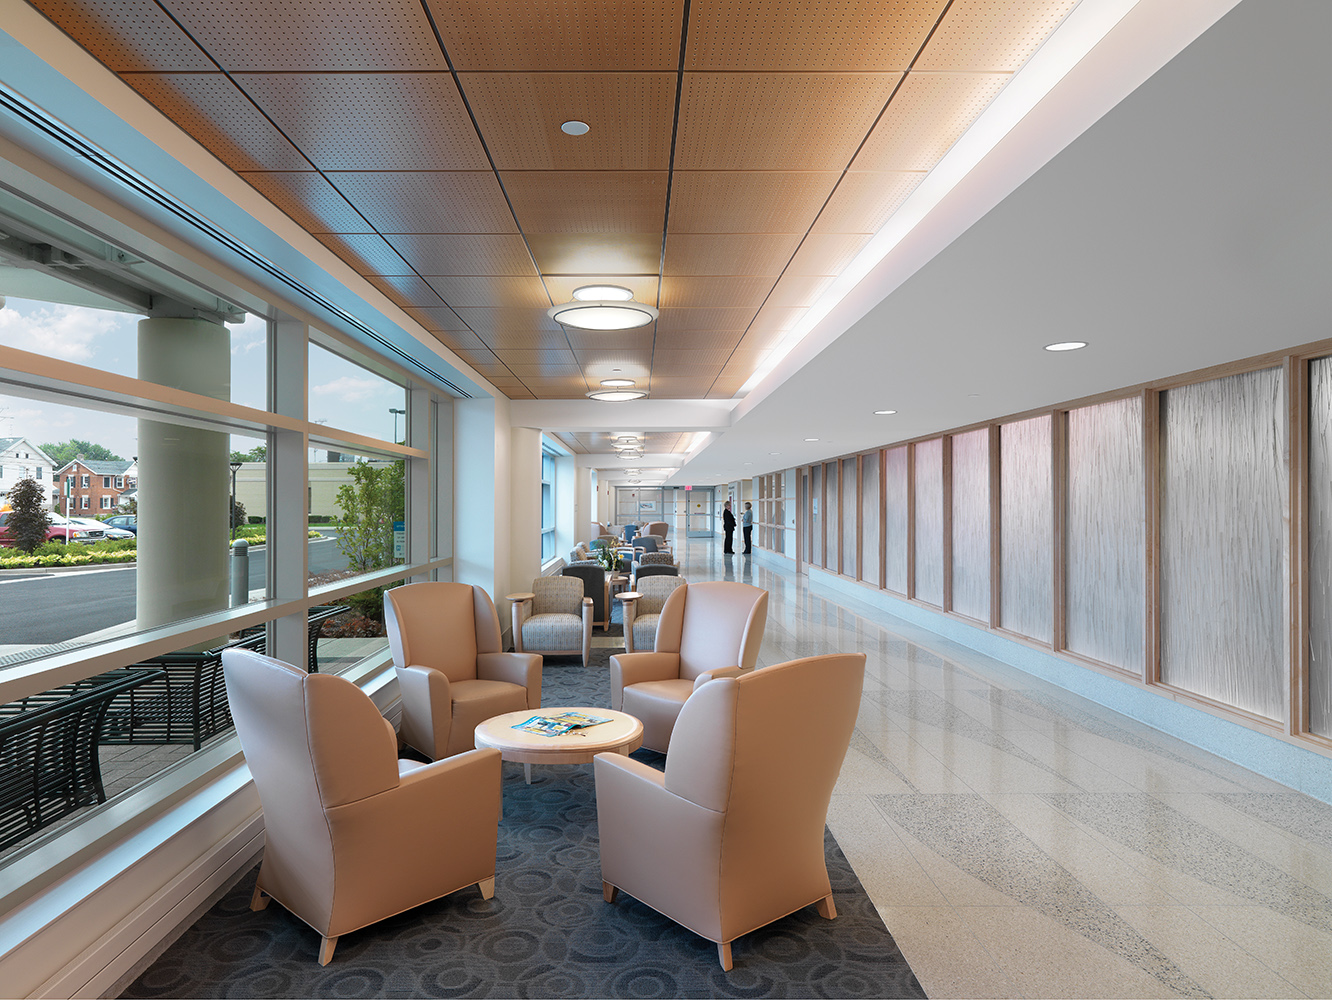 Ovation ceiling-mounted luminaires in a hospital lighting application along a waiting area.